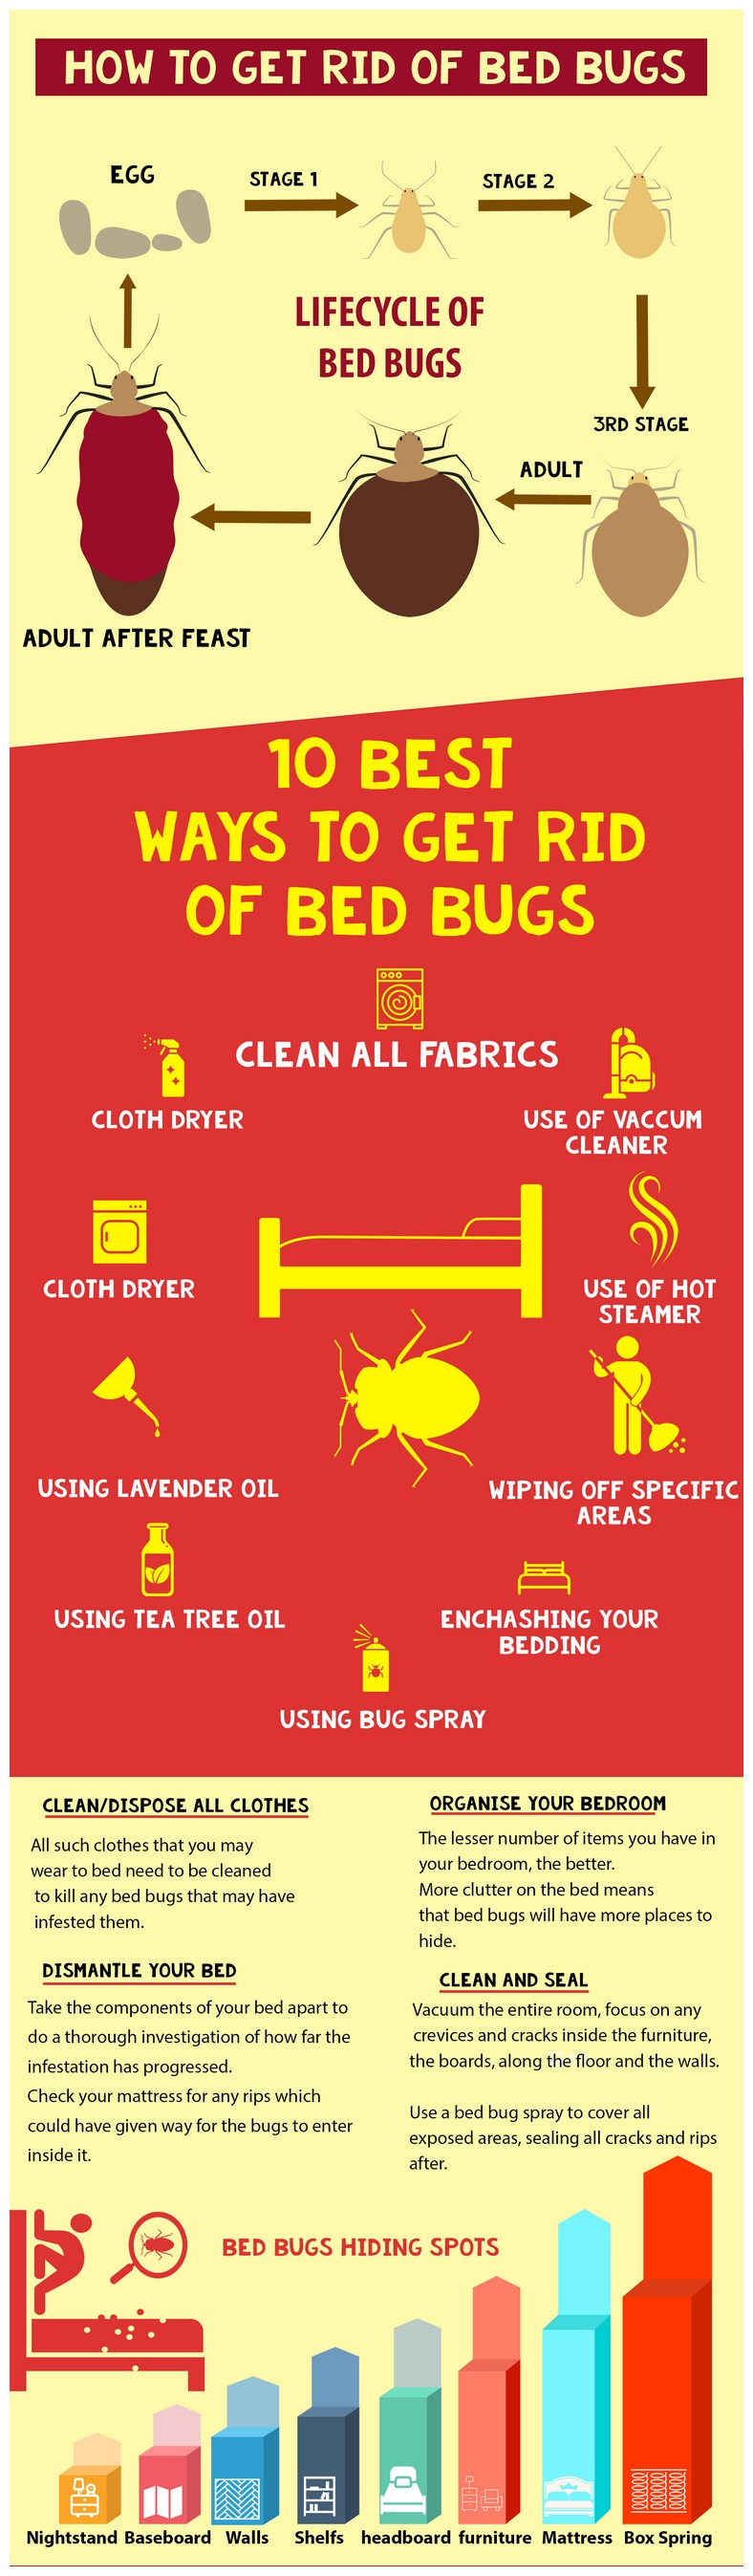 Best Way To Get Rid Of Bed Bugs At Home